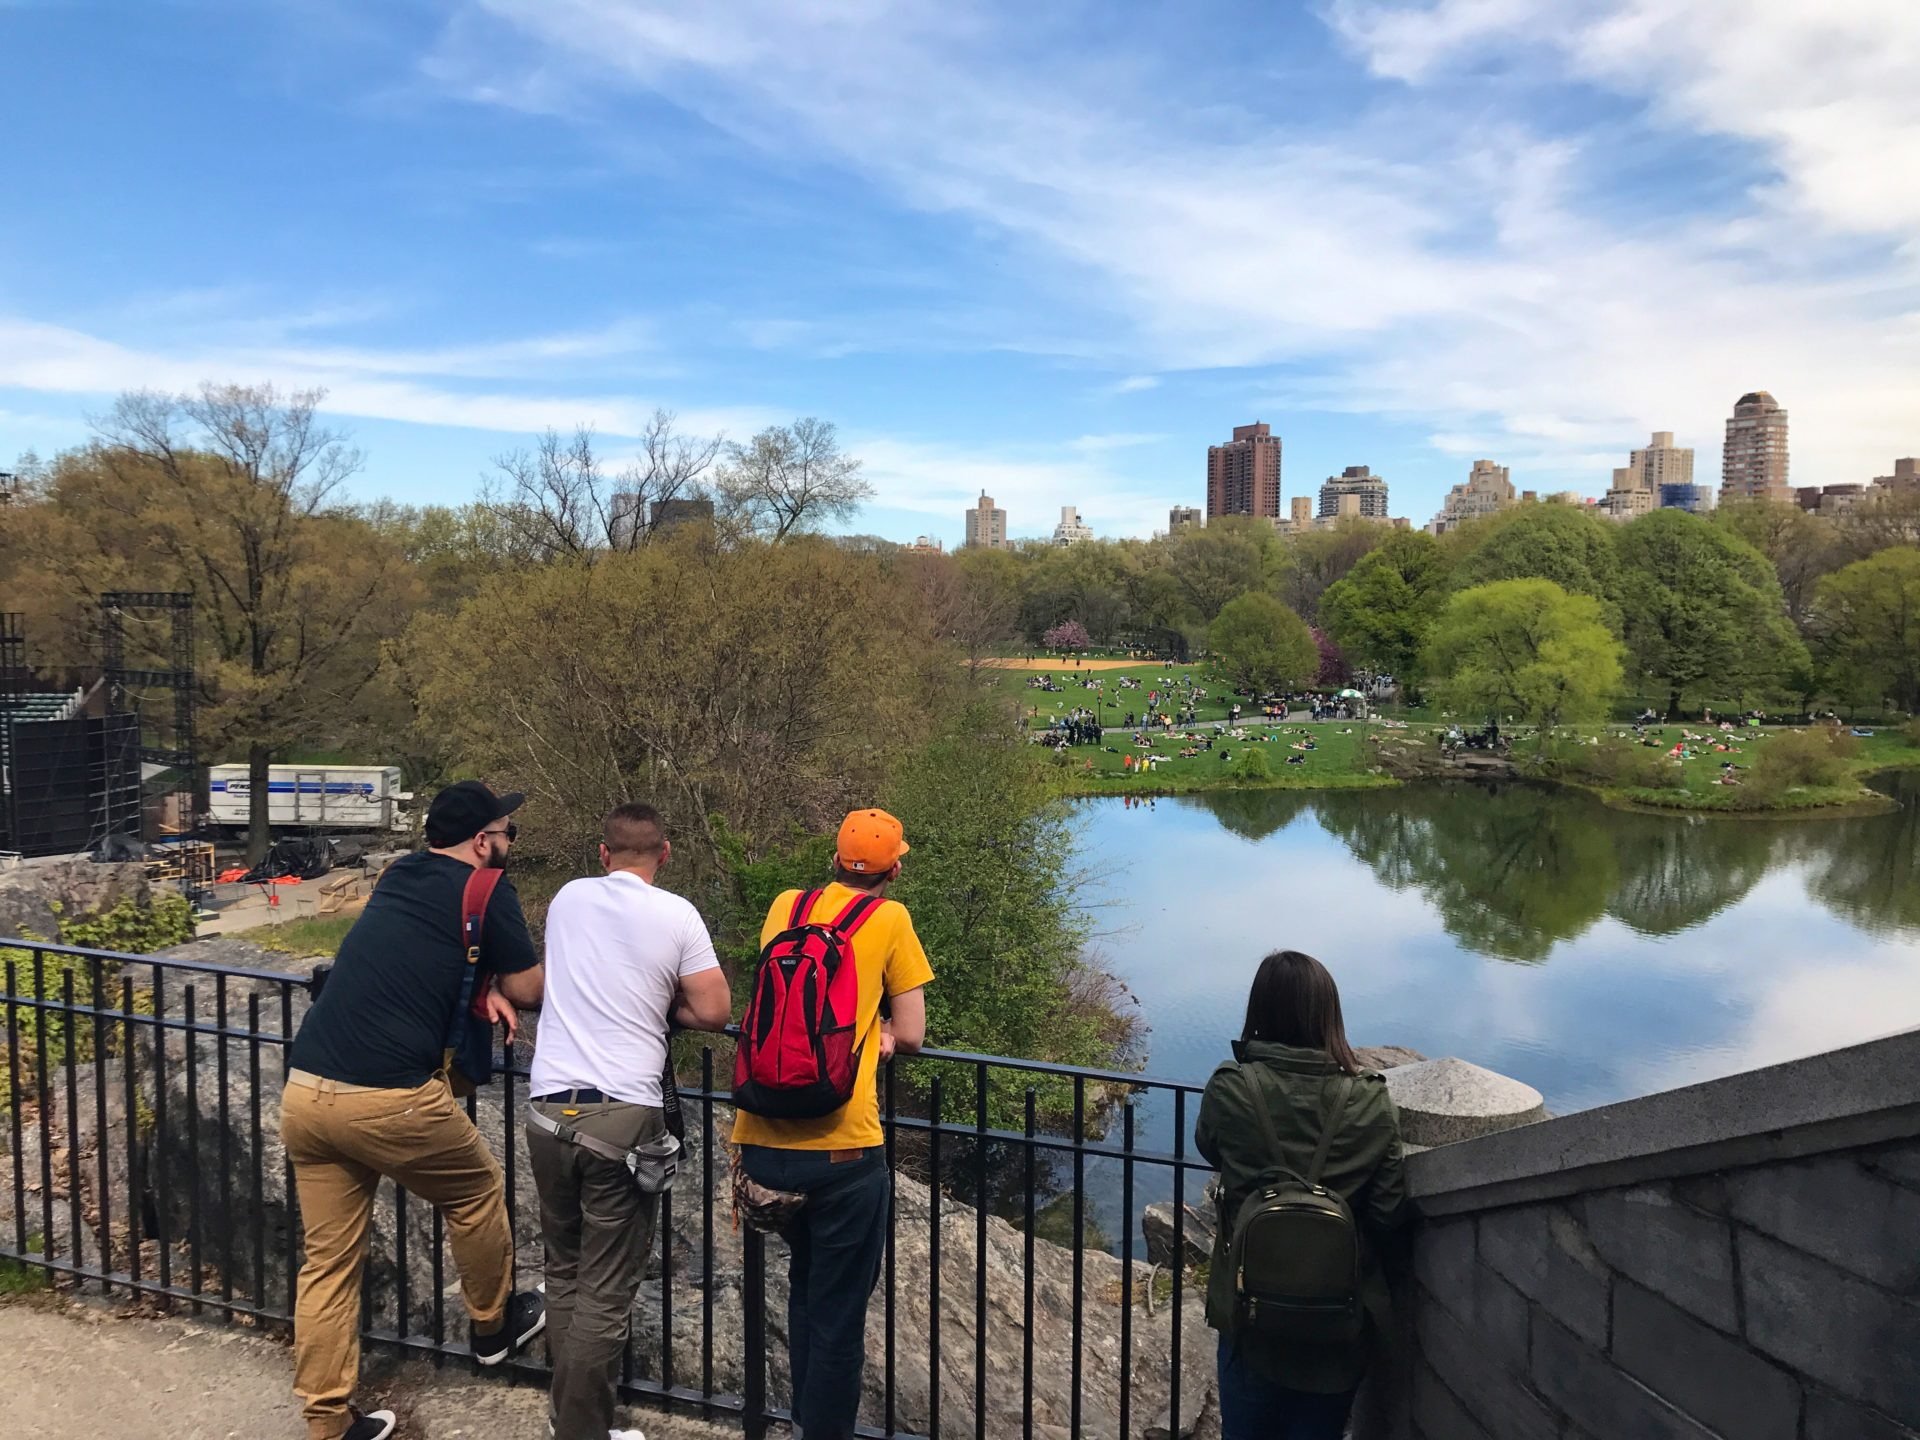 View from Central Park's Belvedere Castle